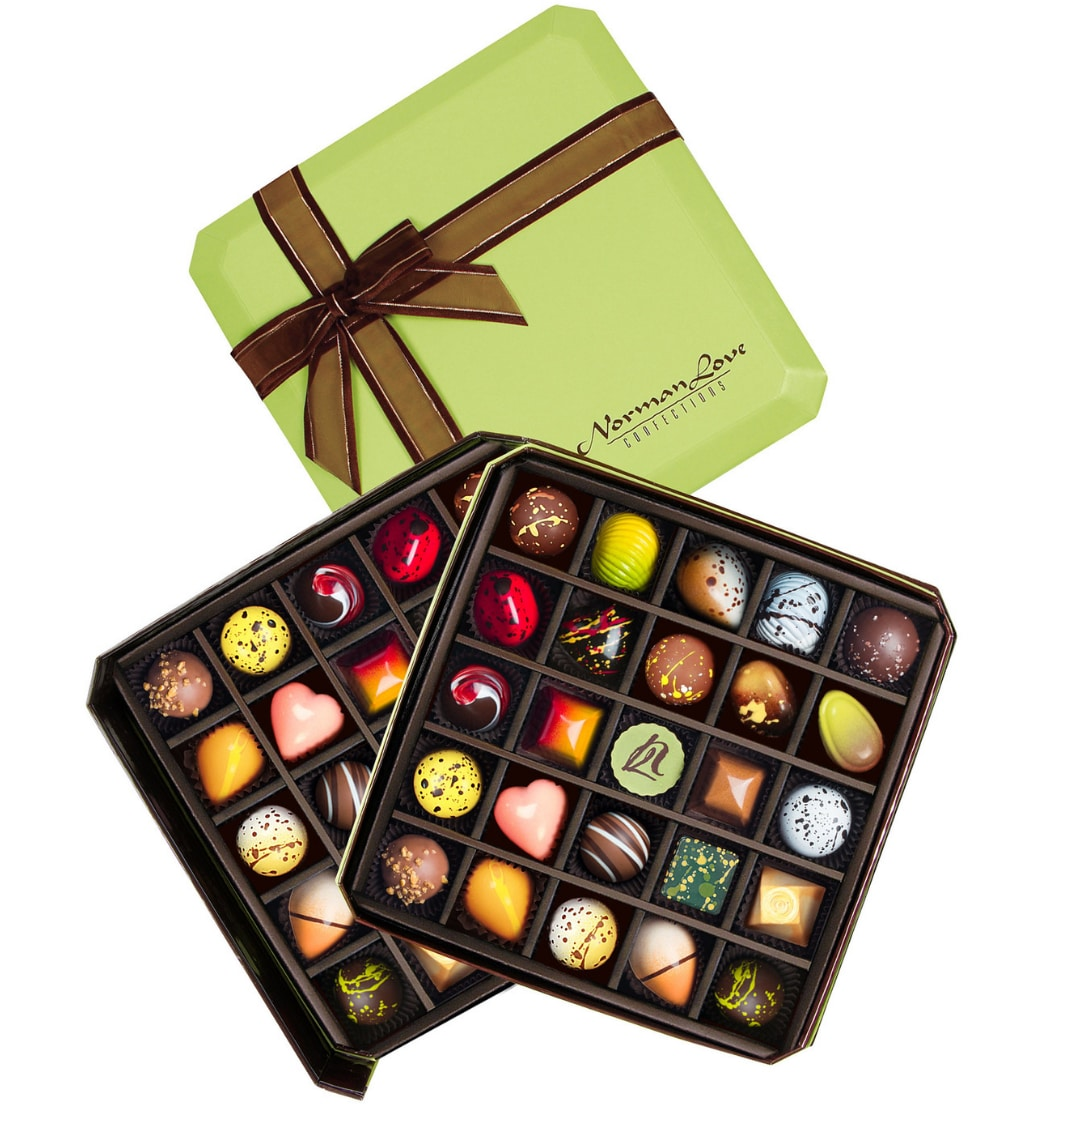 Homemade Chocolates Gift Box At Best Price Homemade Chocolates Gift Box By Joy Delights In Tirupati Justdial